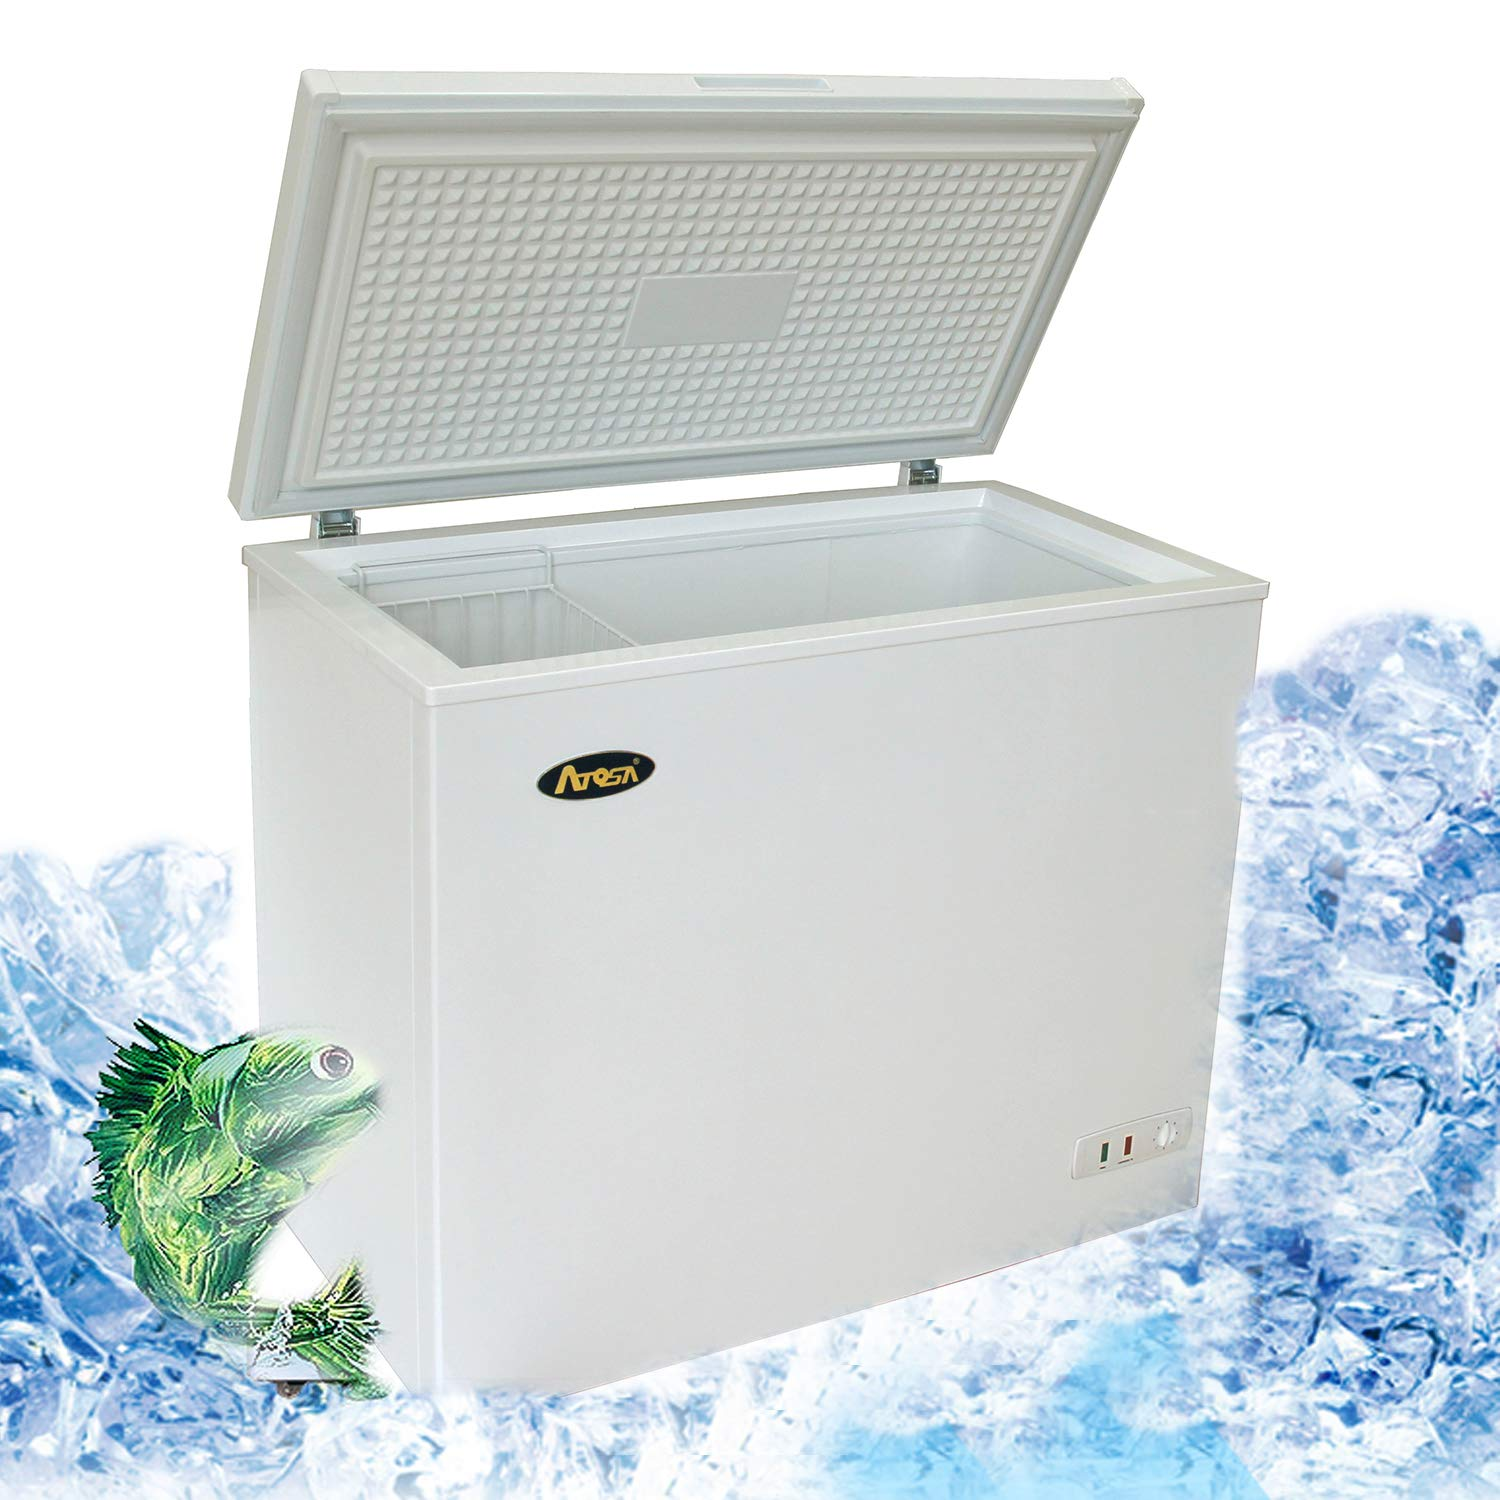 Commercial Top Chest Freezer - Atosa 7 Cu. Ft Deep Ice Cream Freezer with Adjustable Thermostat, Rollers, Solid Door,White(MWF-9007) Yindu kitchen equipment